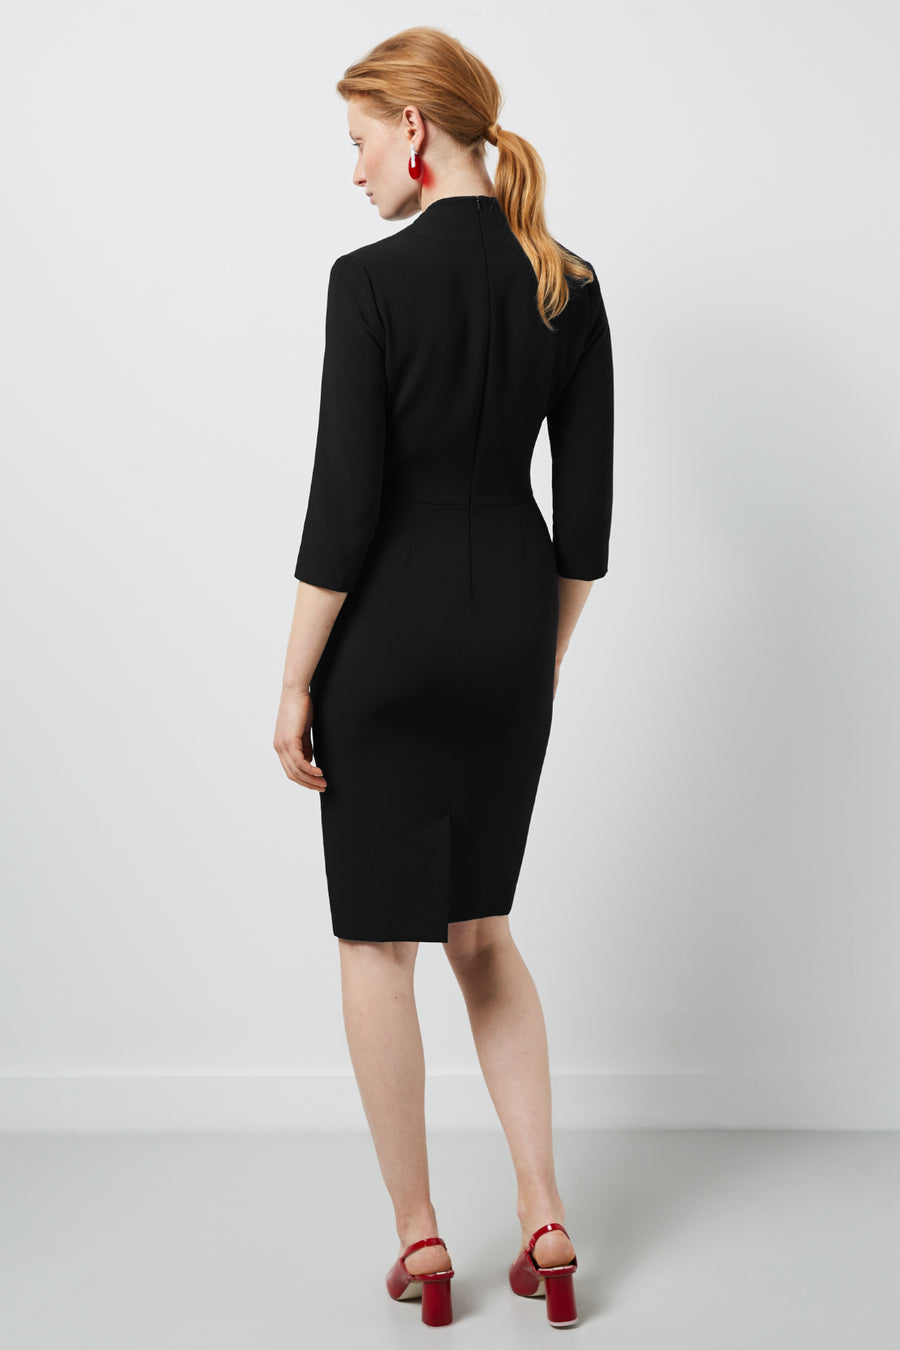 Montague Dress Black